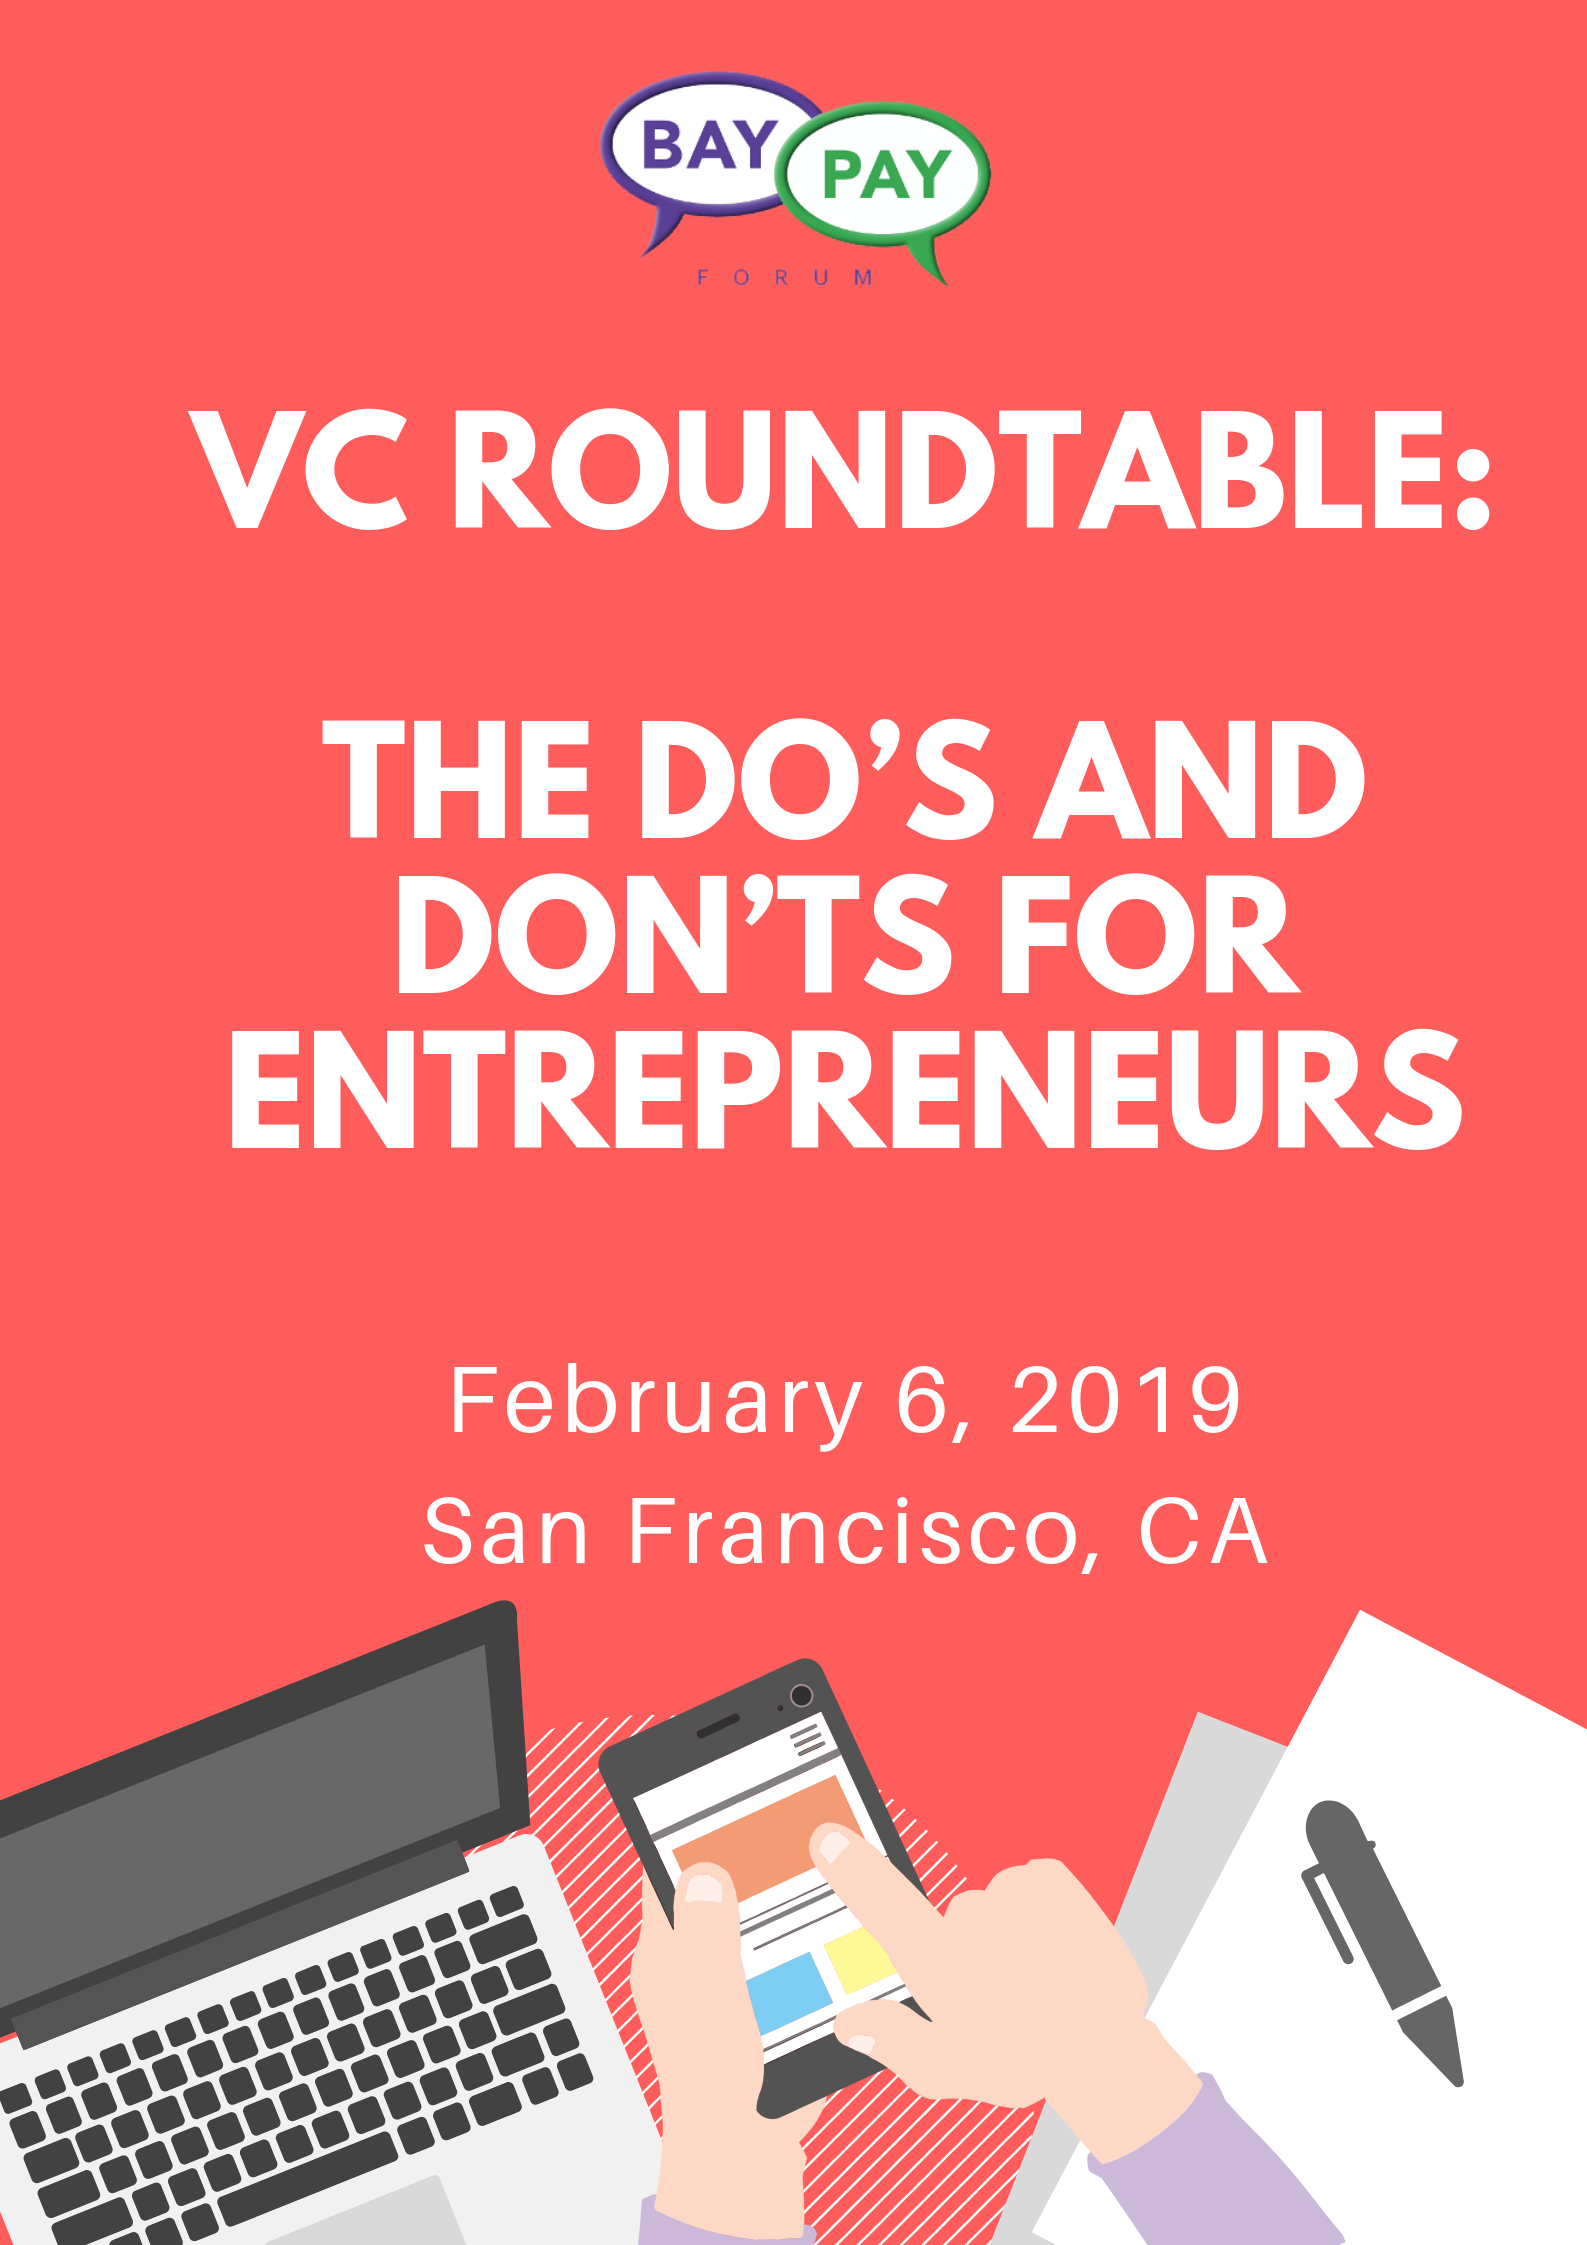 VC Roundtable: The Do's and Don'ts for Entrepreneurs